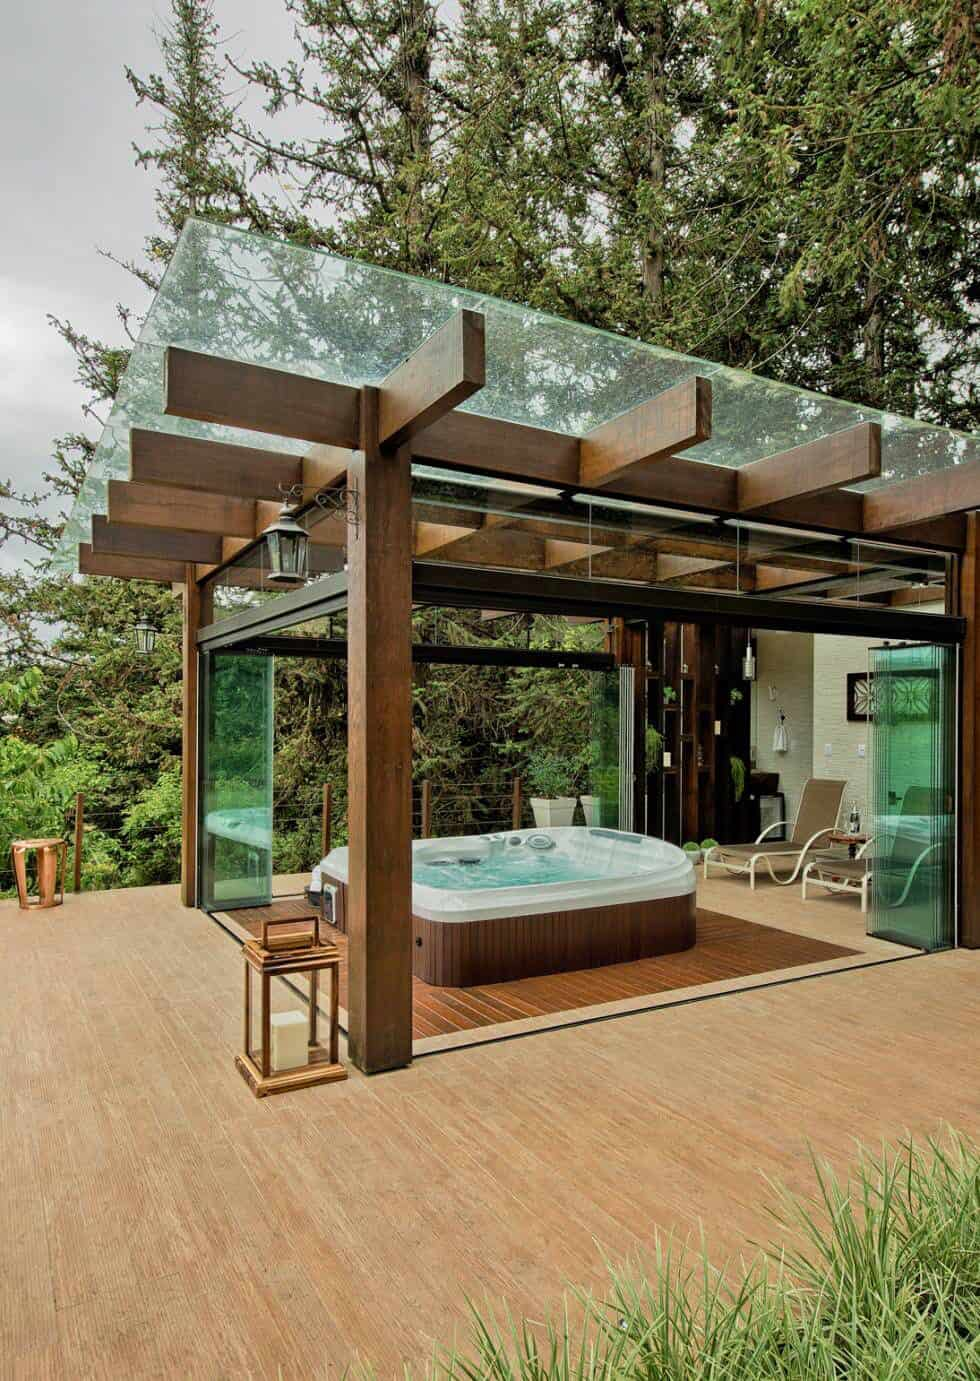 11 Backyard Pavilions Ideas You Didn't Know You Needed: Glass Roof Pavilion with Jacuzzi